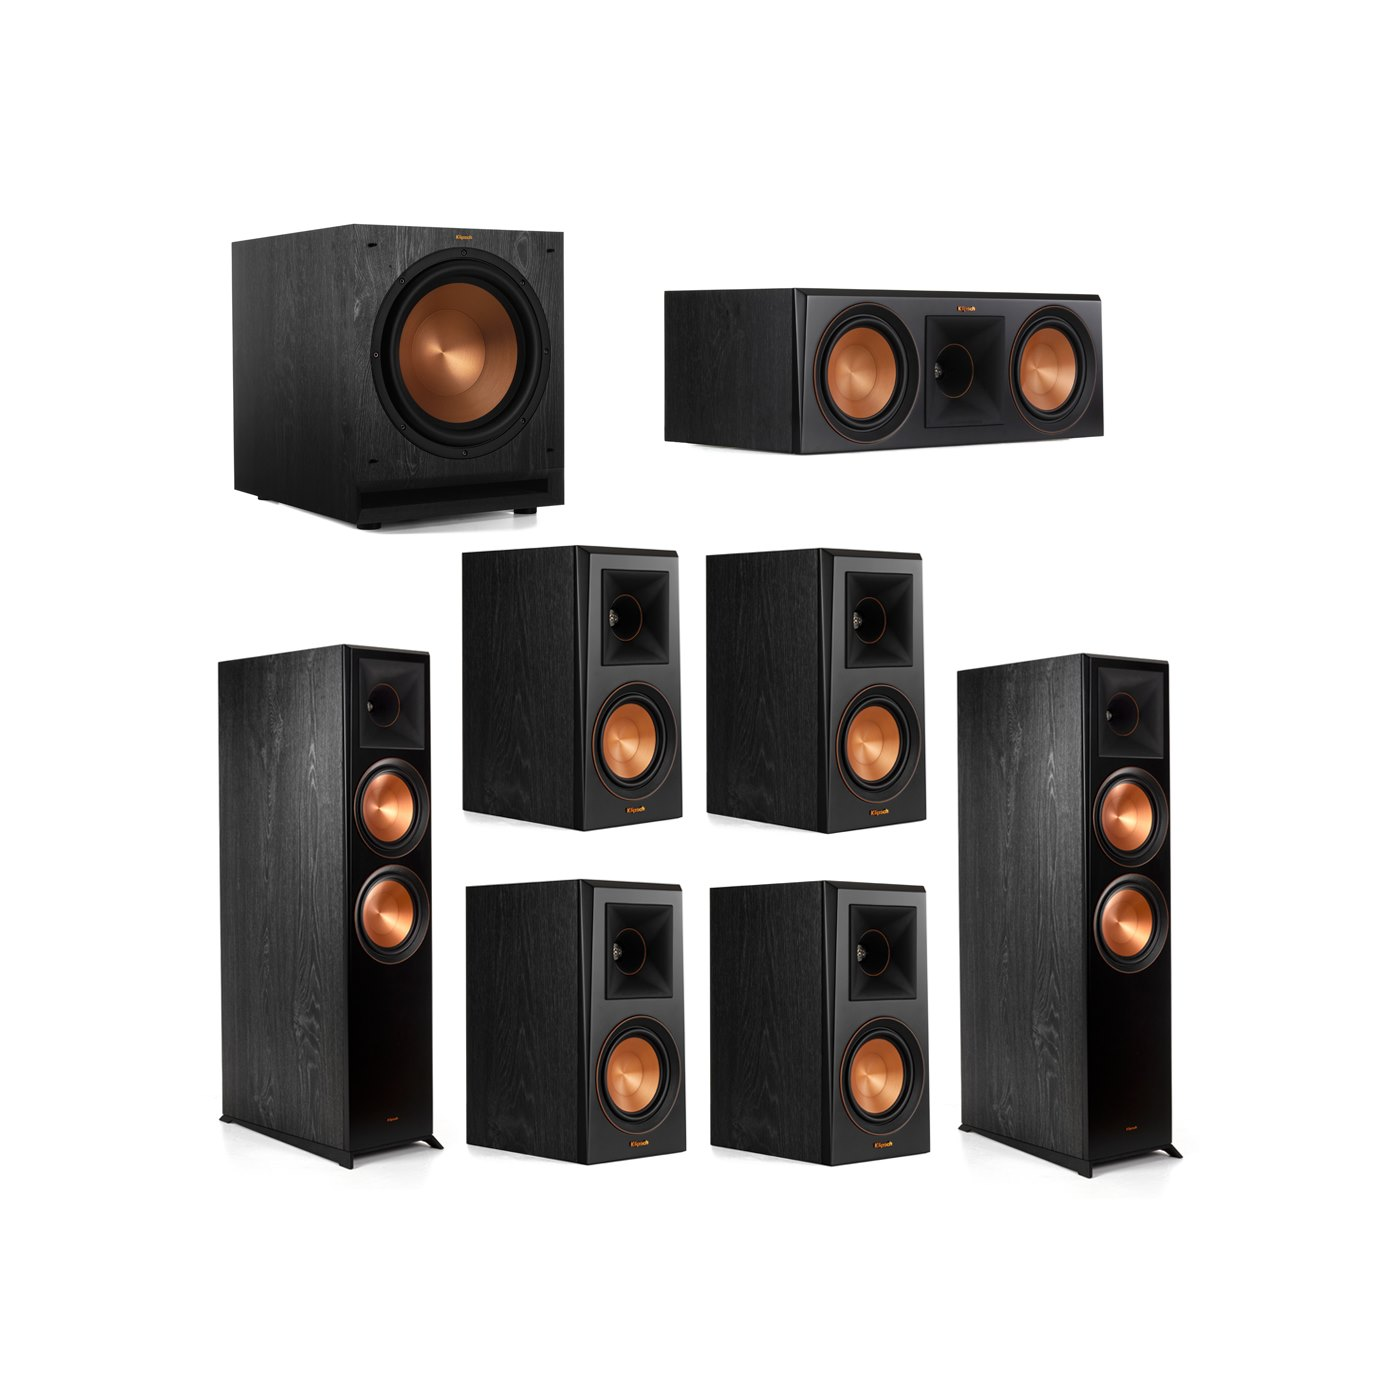 Klipsch 7.1.2 System - 2 RP-8060FA Dolby Atmos Speakers, 1 RP-600C, 4 RP-500M Speakers, 1 SPL-120